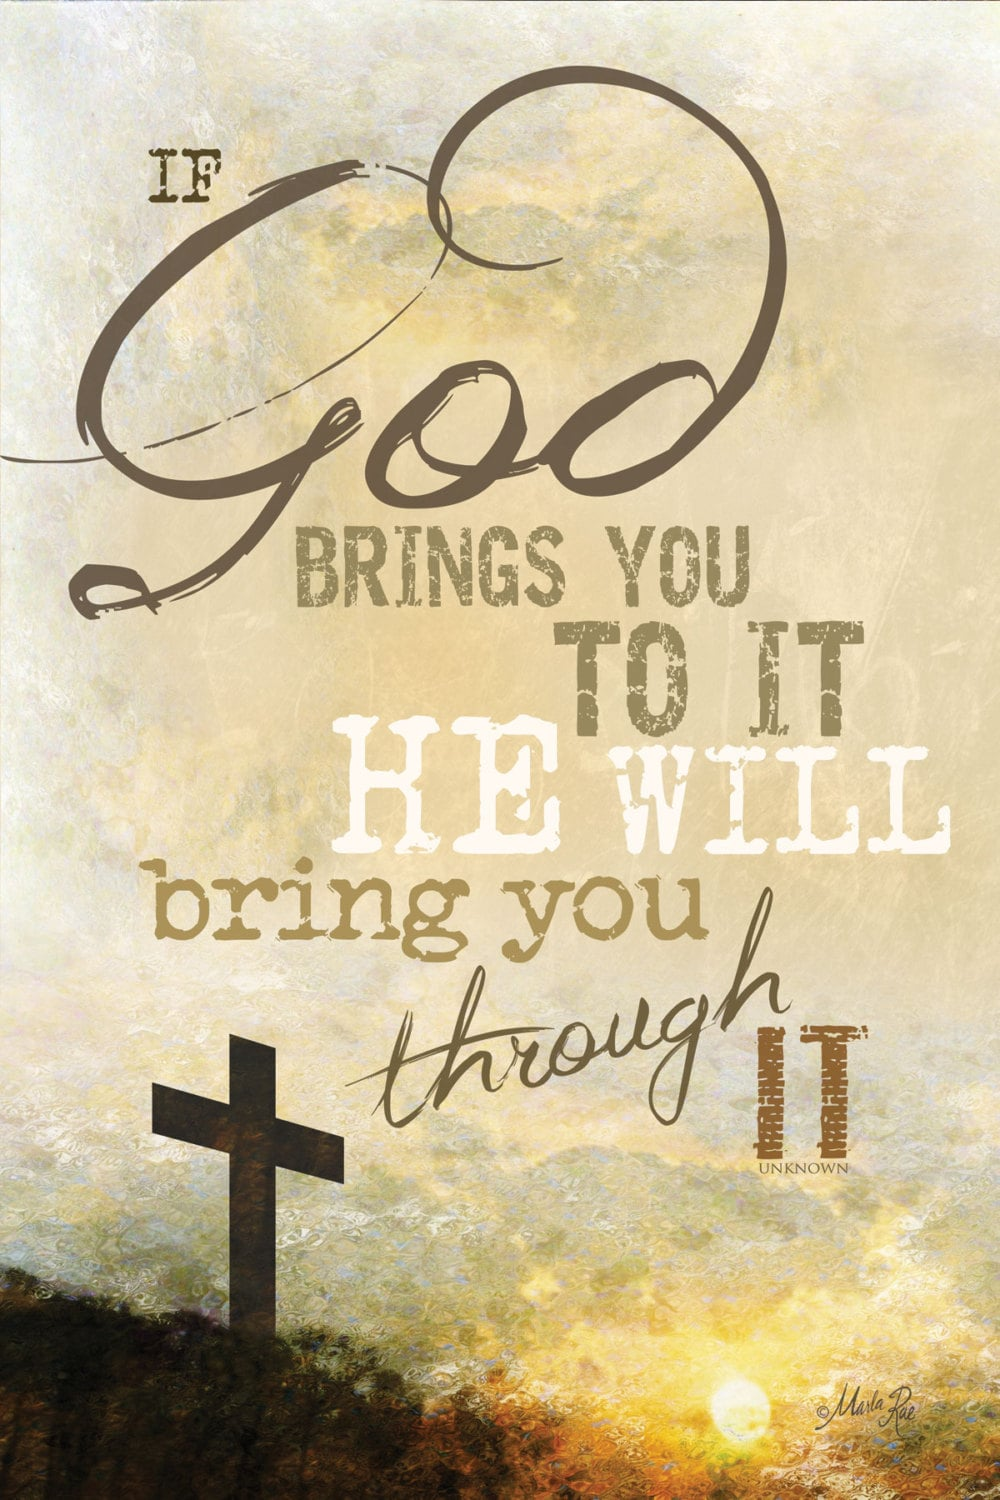 MA681 If God Brings you to it He will bring you through it